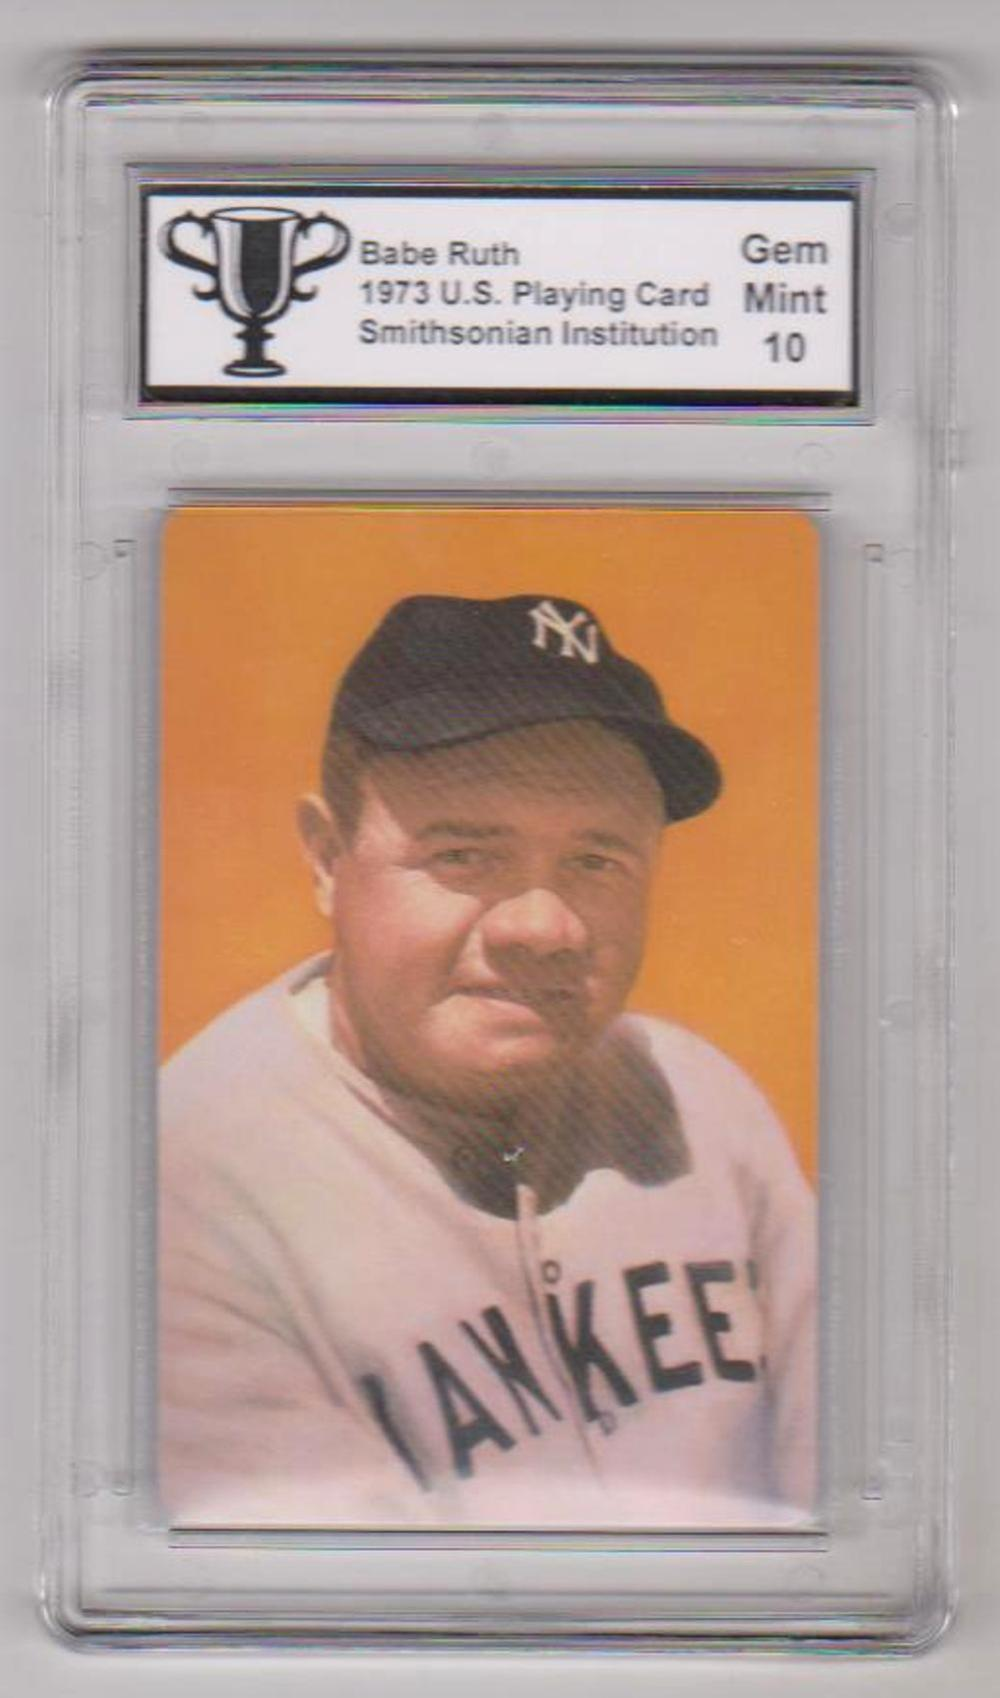 Graded Gem Mint 10 - 1973 Babe Ruth Smithsonian Institution U.S. Playing Card